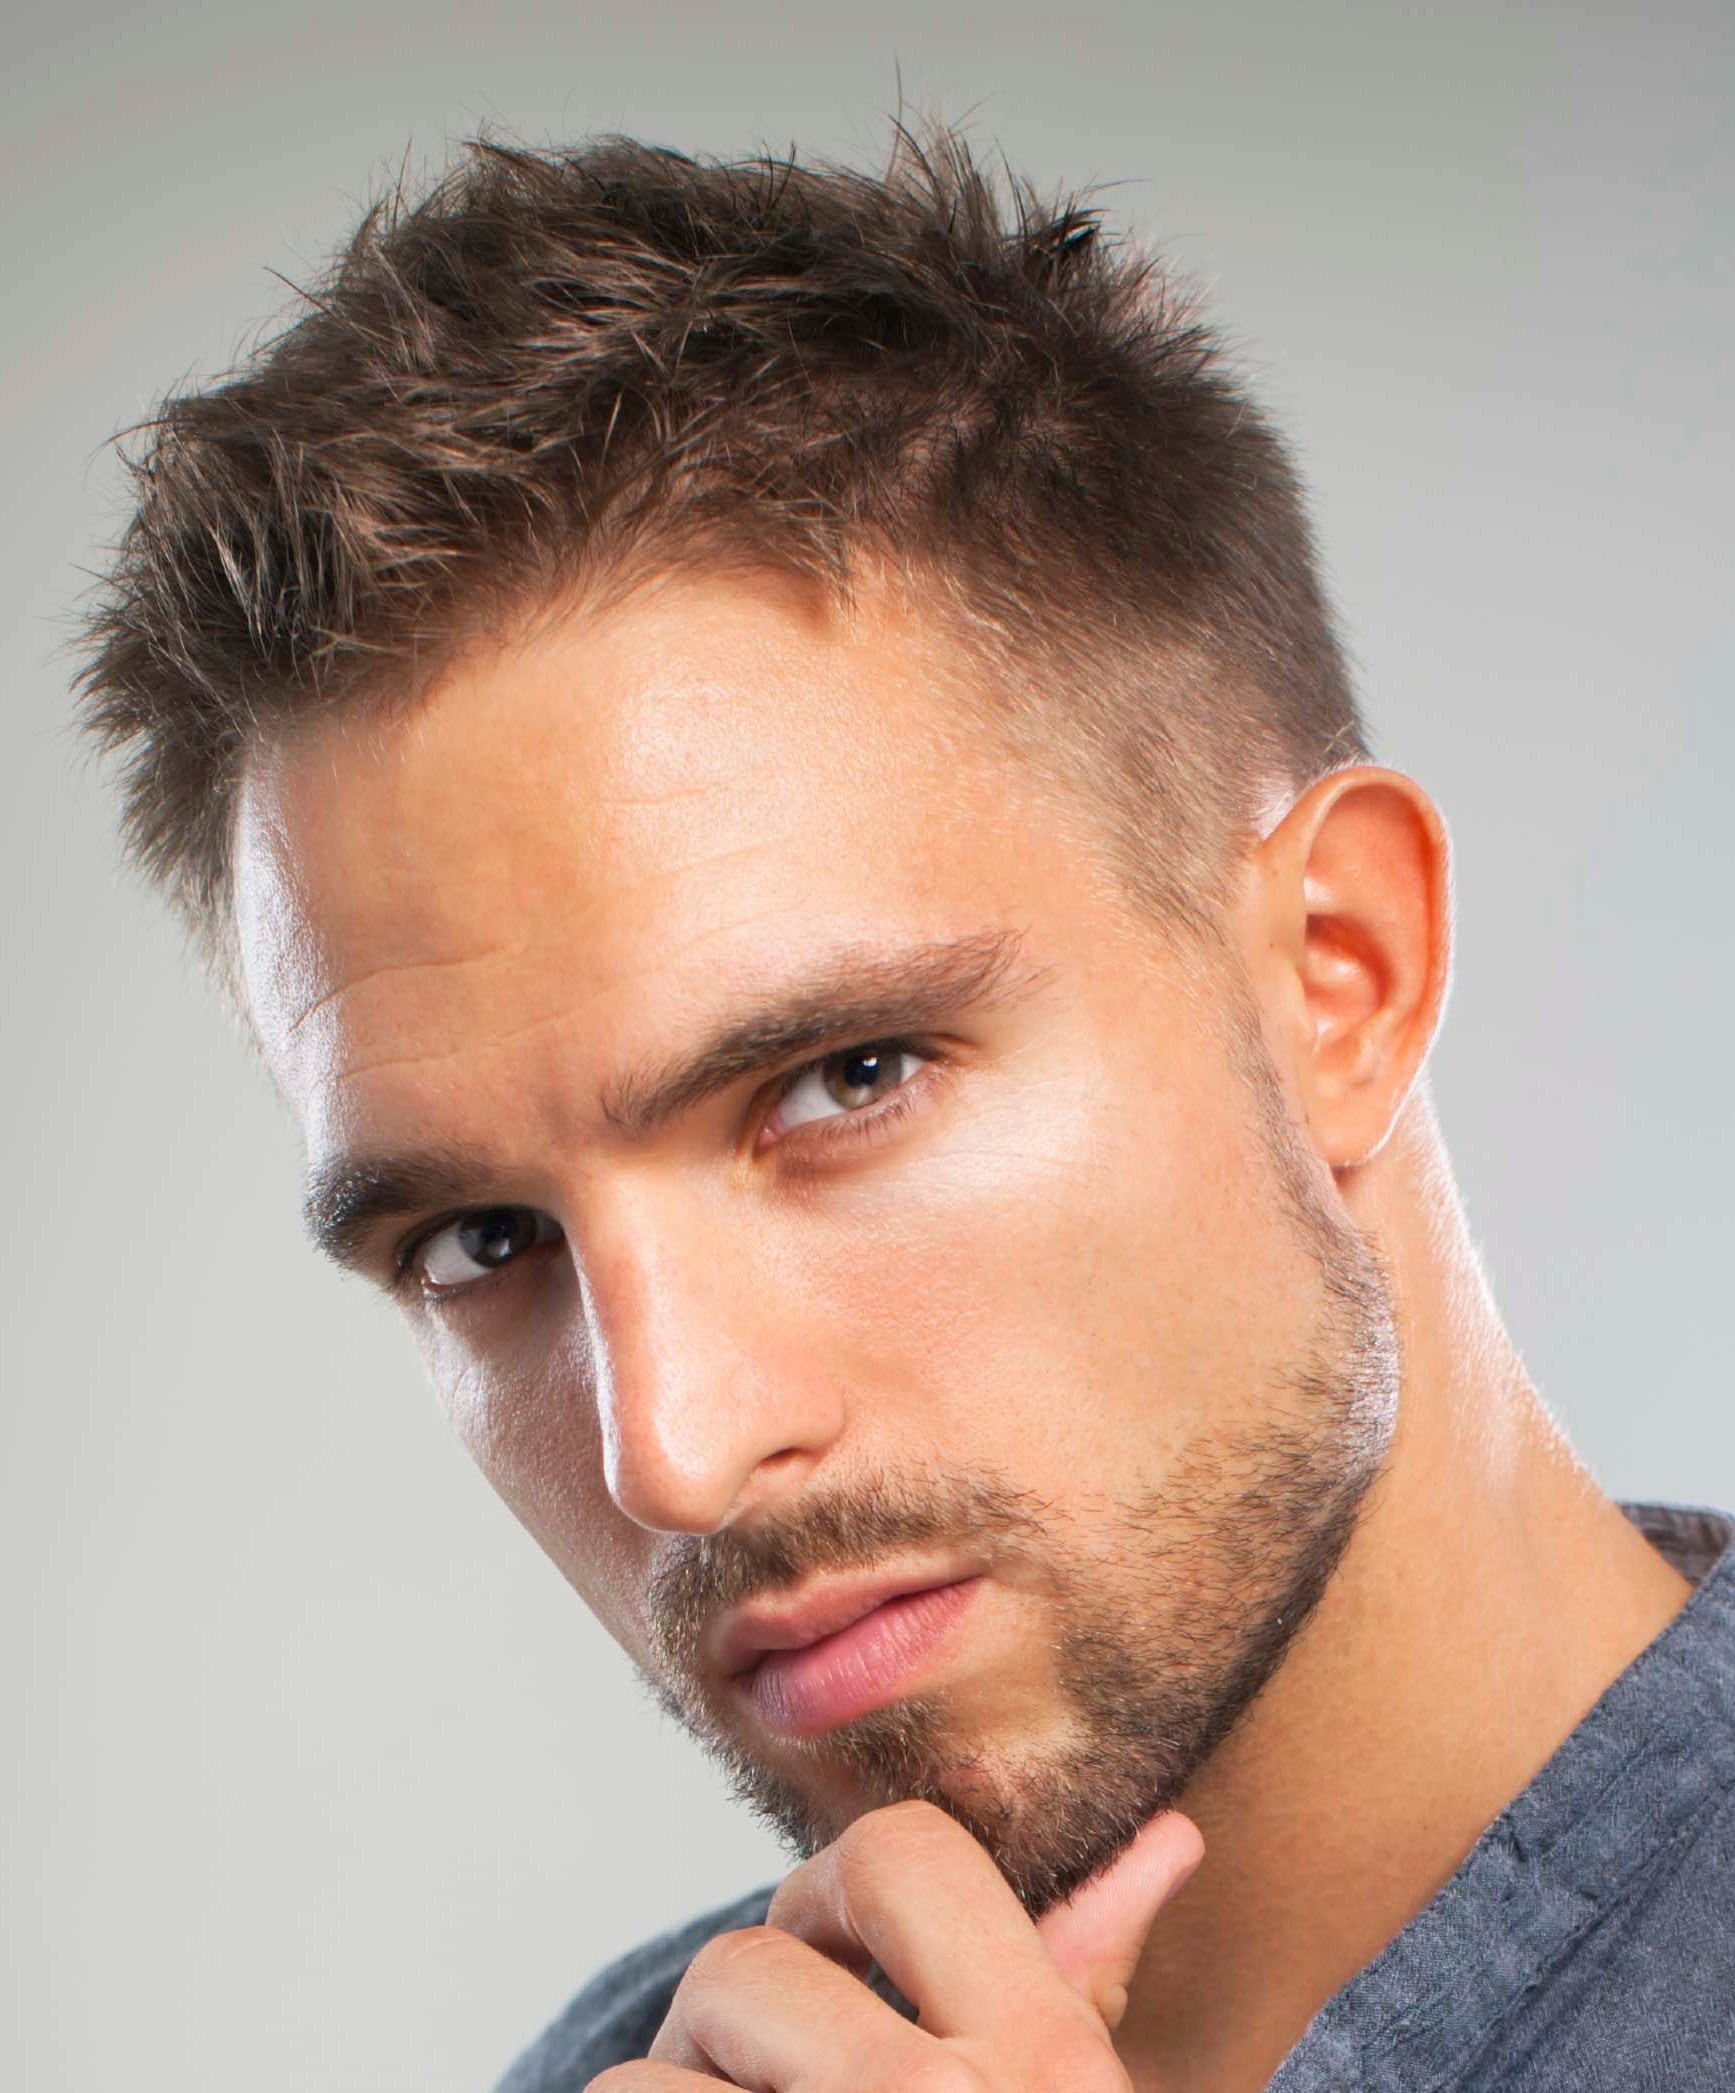 Best ideas about Hairstyles For Thin Hair Males . Save or Pin 5 the best hairstyles for men with thin hair Now.